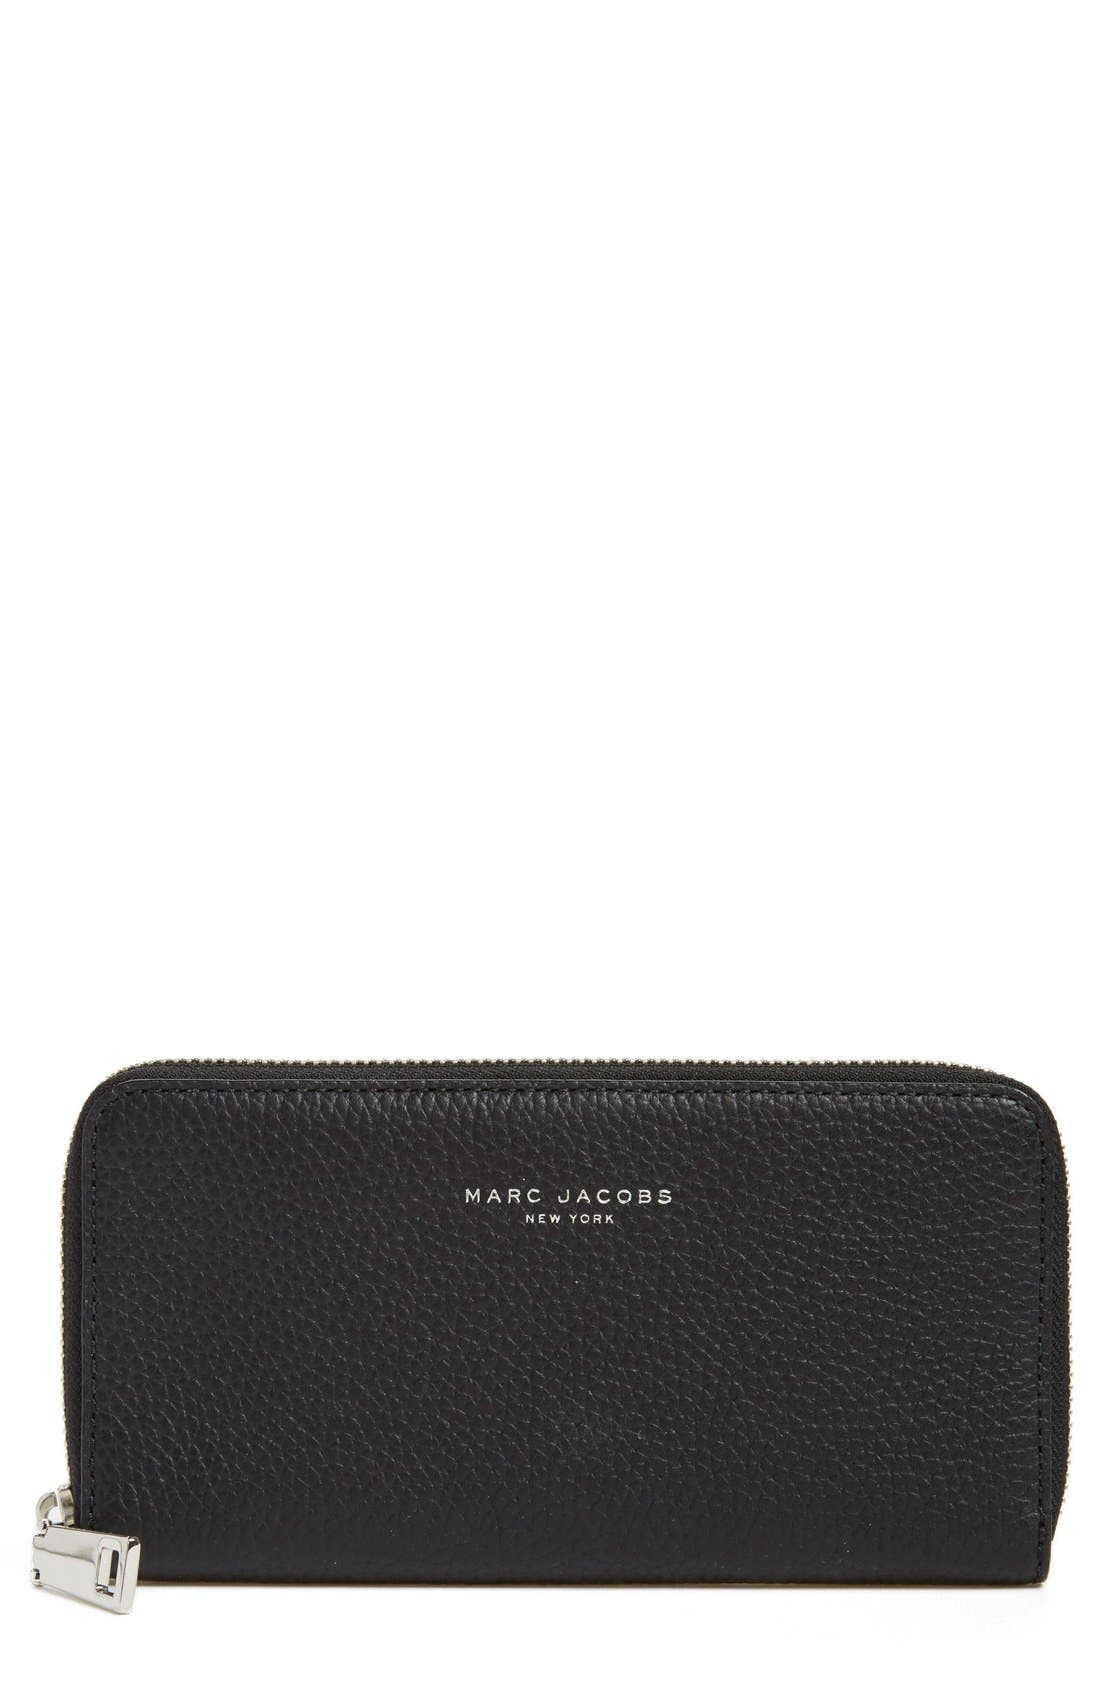 'Pike Place Vertical Zippy' Leather Zip Around Wallet,                             Main thumbnail 1, color,                             001